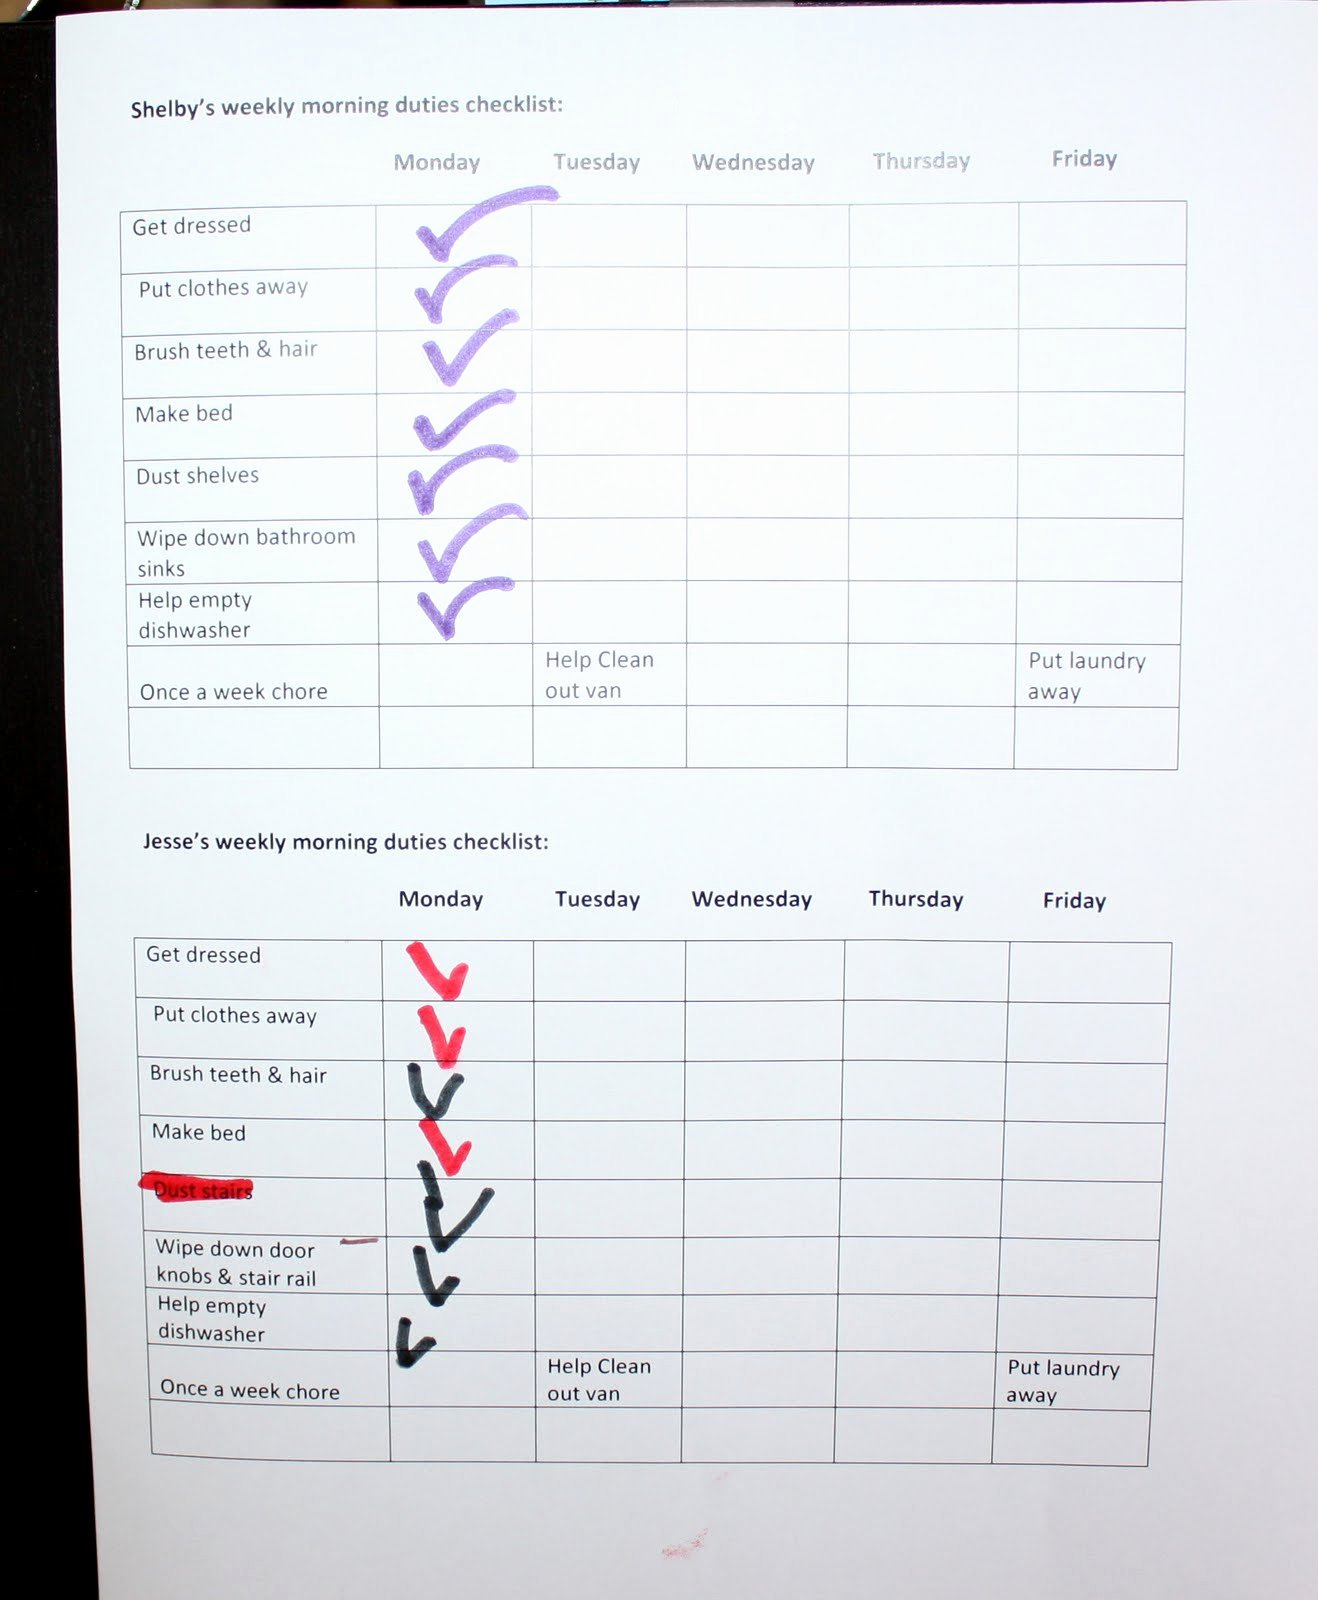 Morning Routine Checklist Template Awesome Morning Routine Checklist Template Frompo